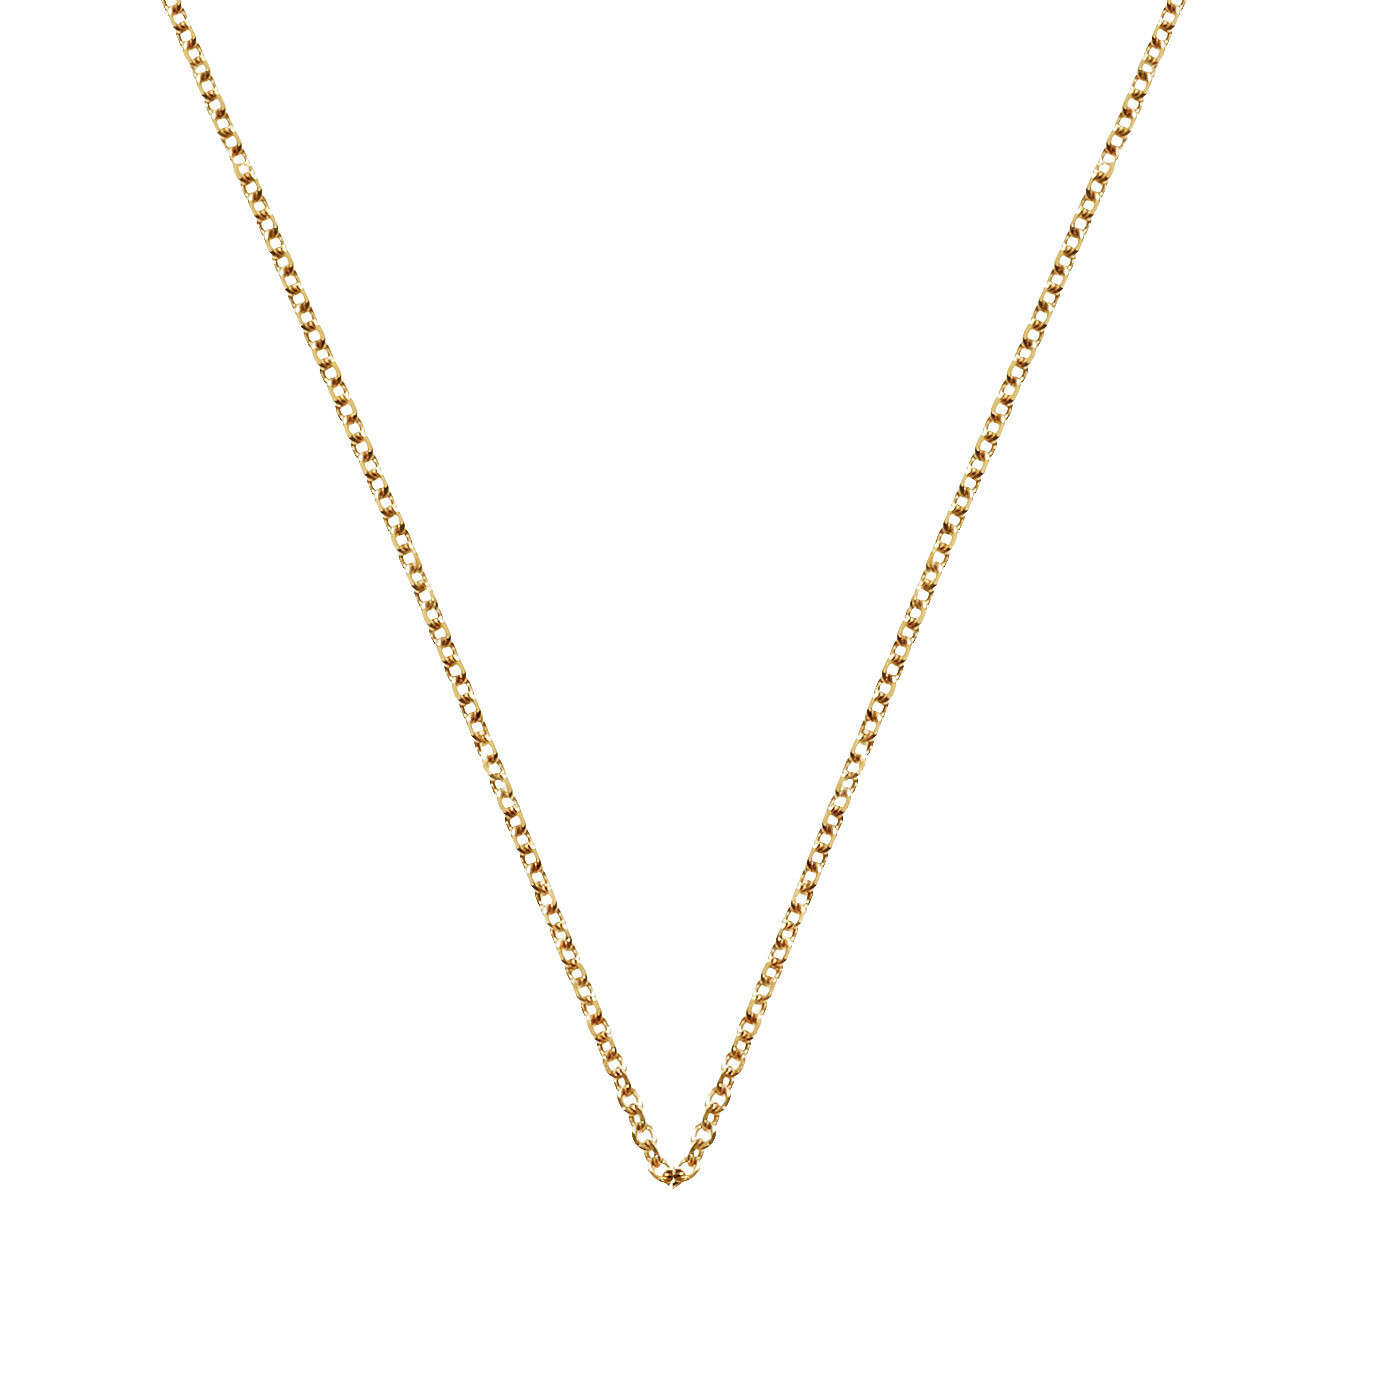 Solid Gold Necklace starting at $100.00